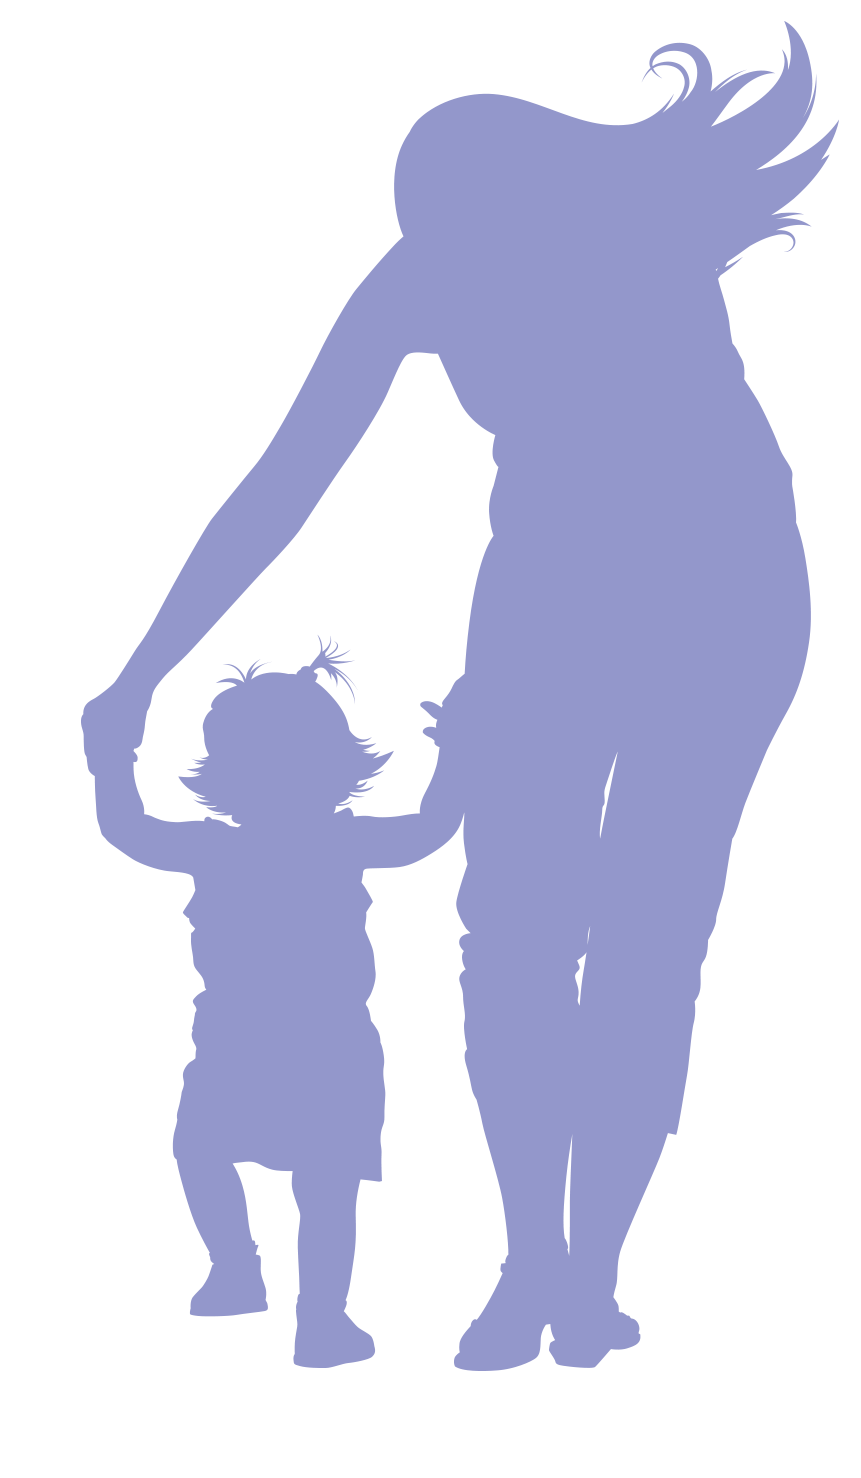 Silhouette of mother and baby playing